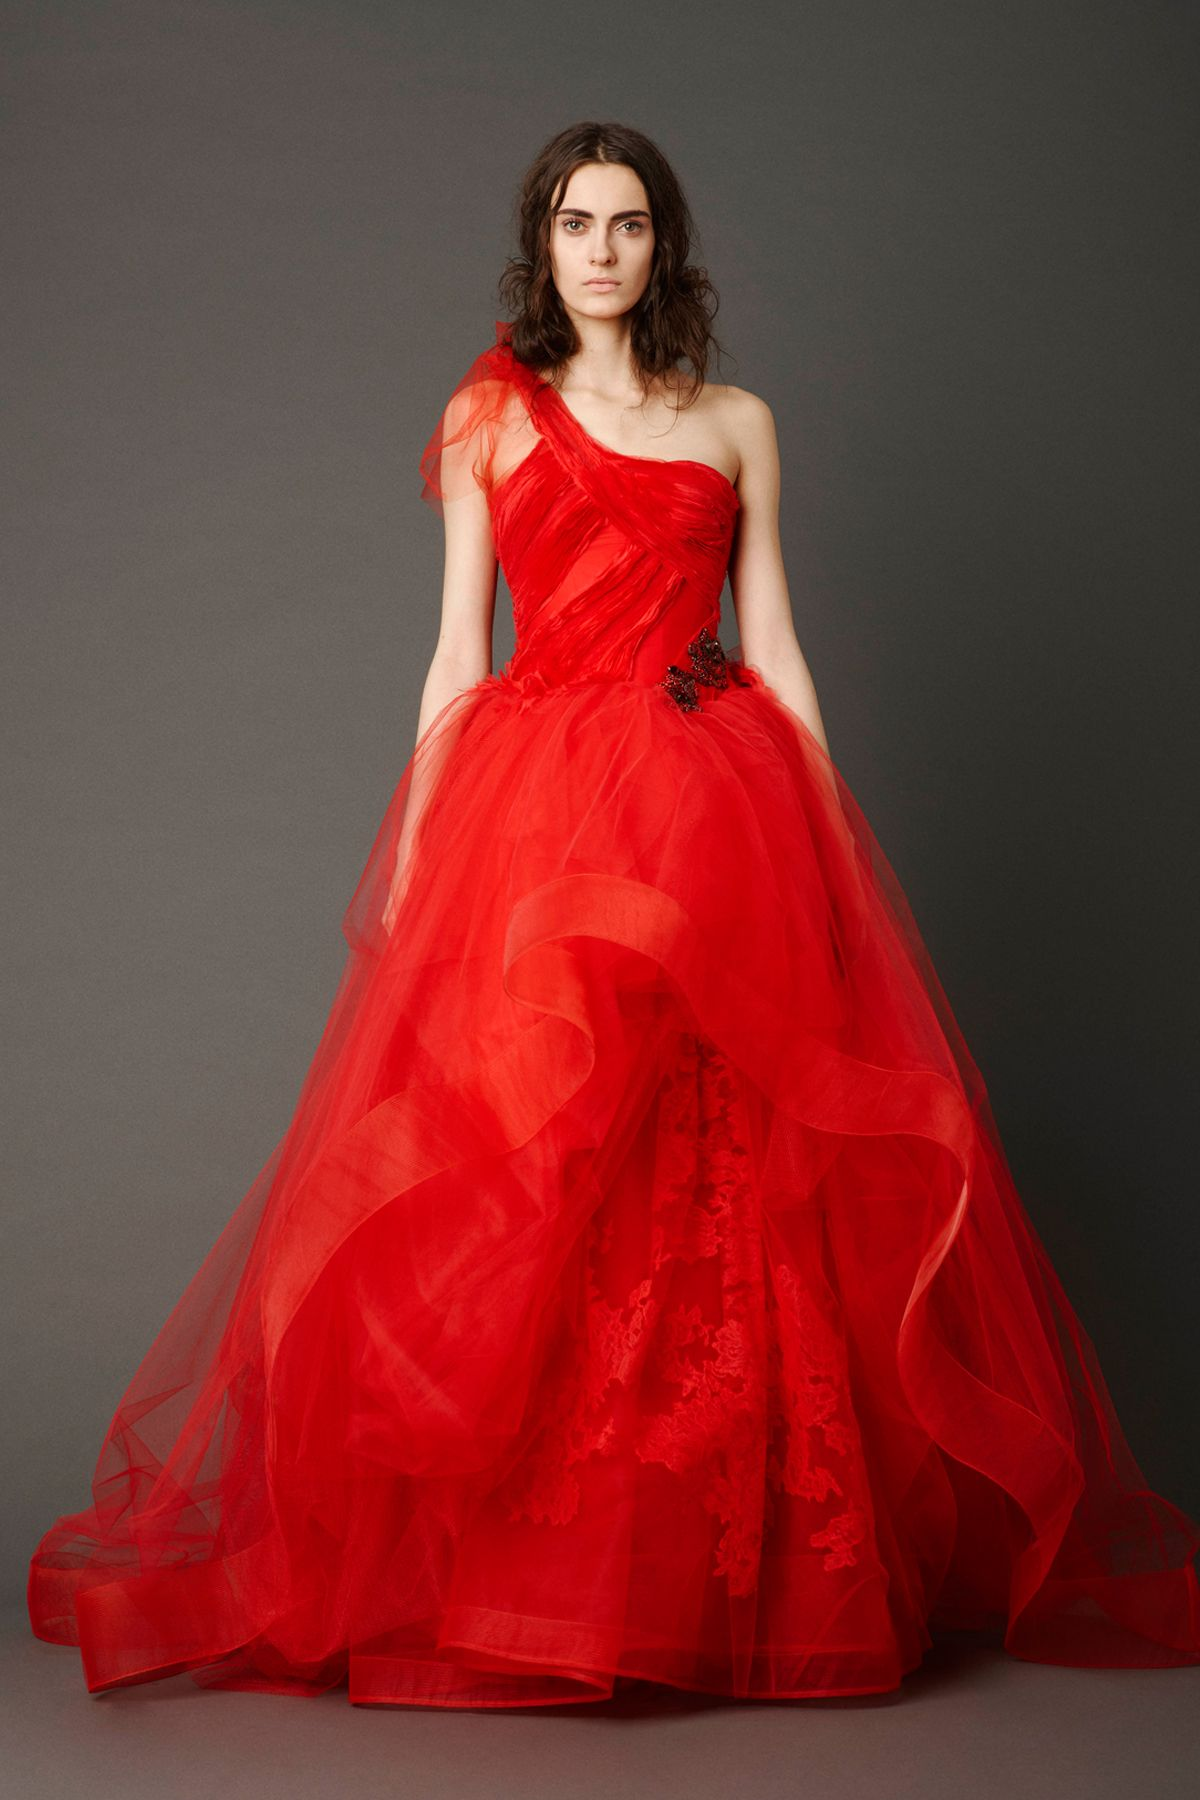 Vera wang ball gown wedding dress  Cardinal oneshoulder ballgown with sheared flange bodice and